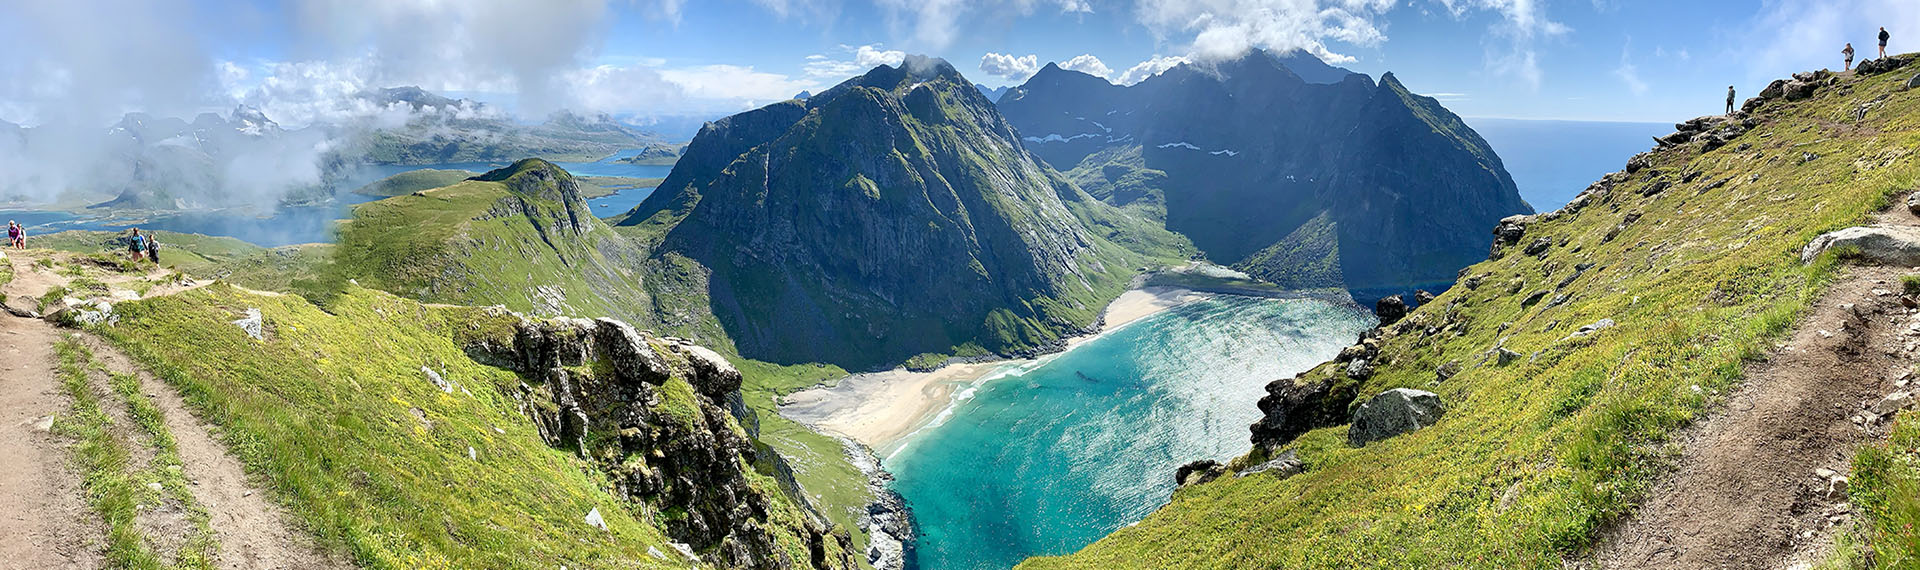 Ryten, Lofoten, Norway